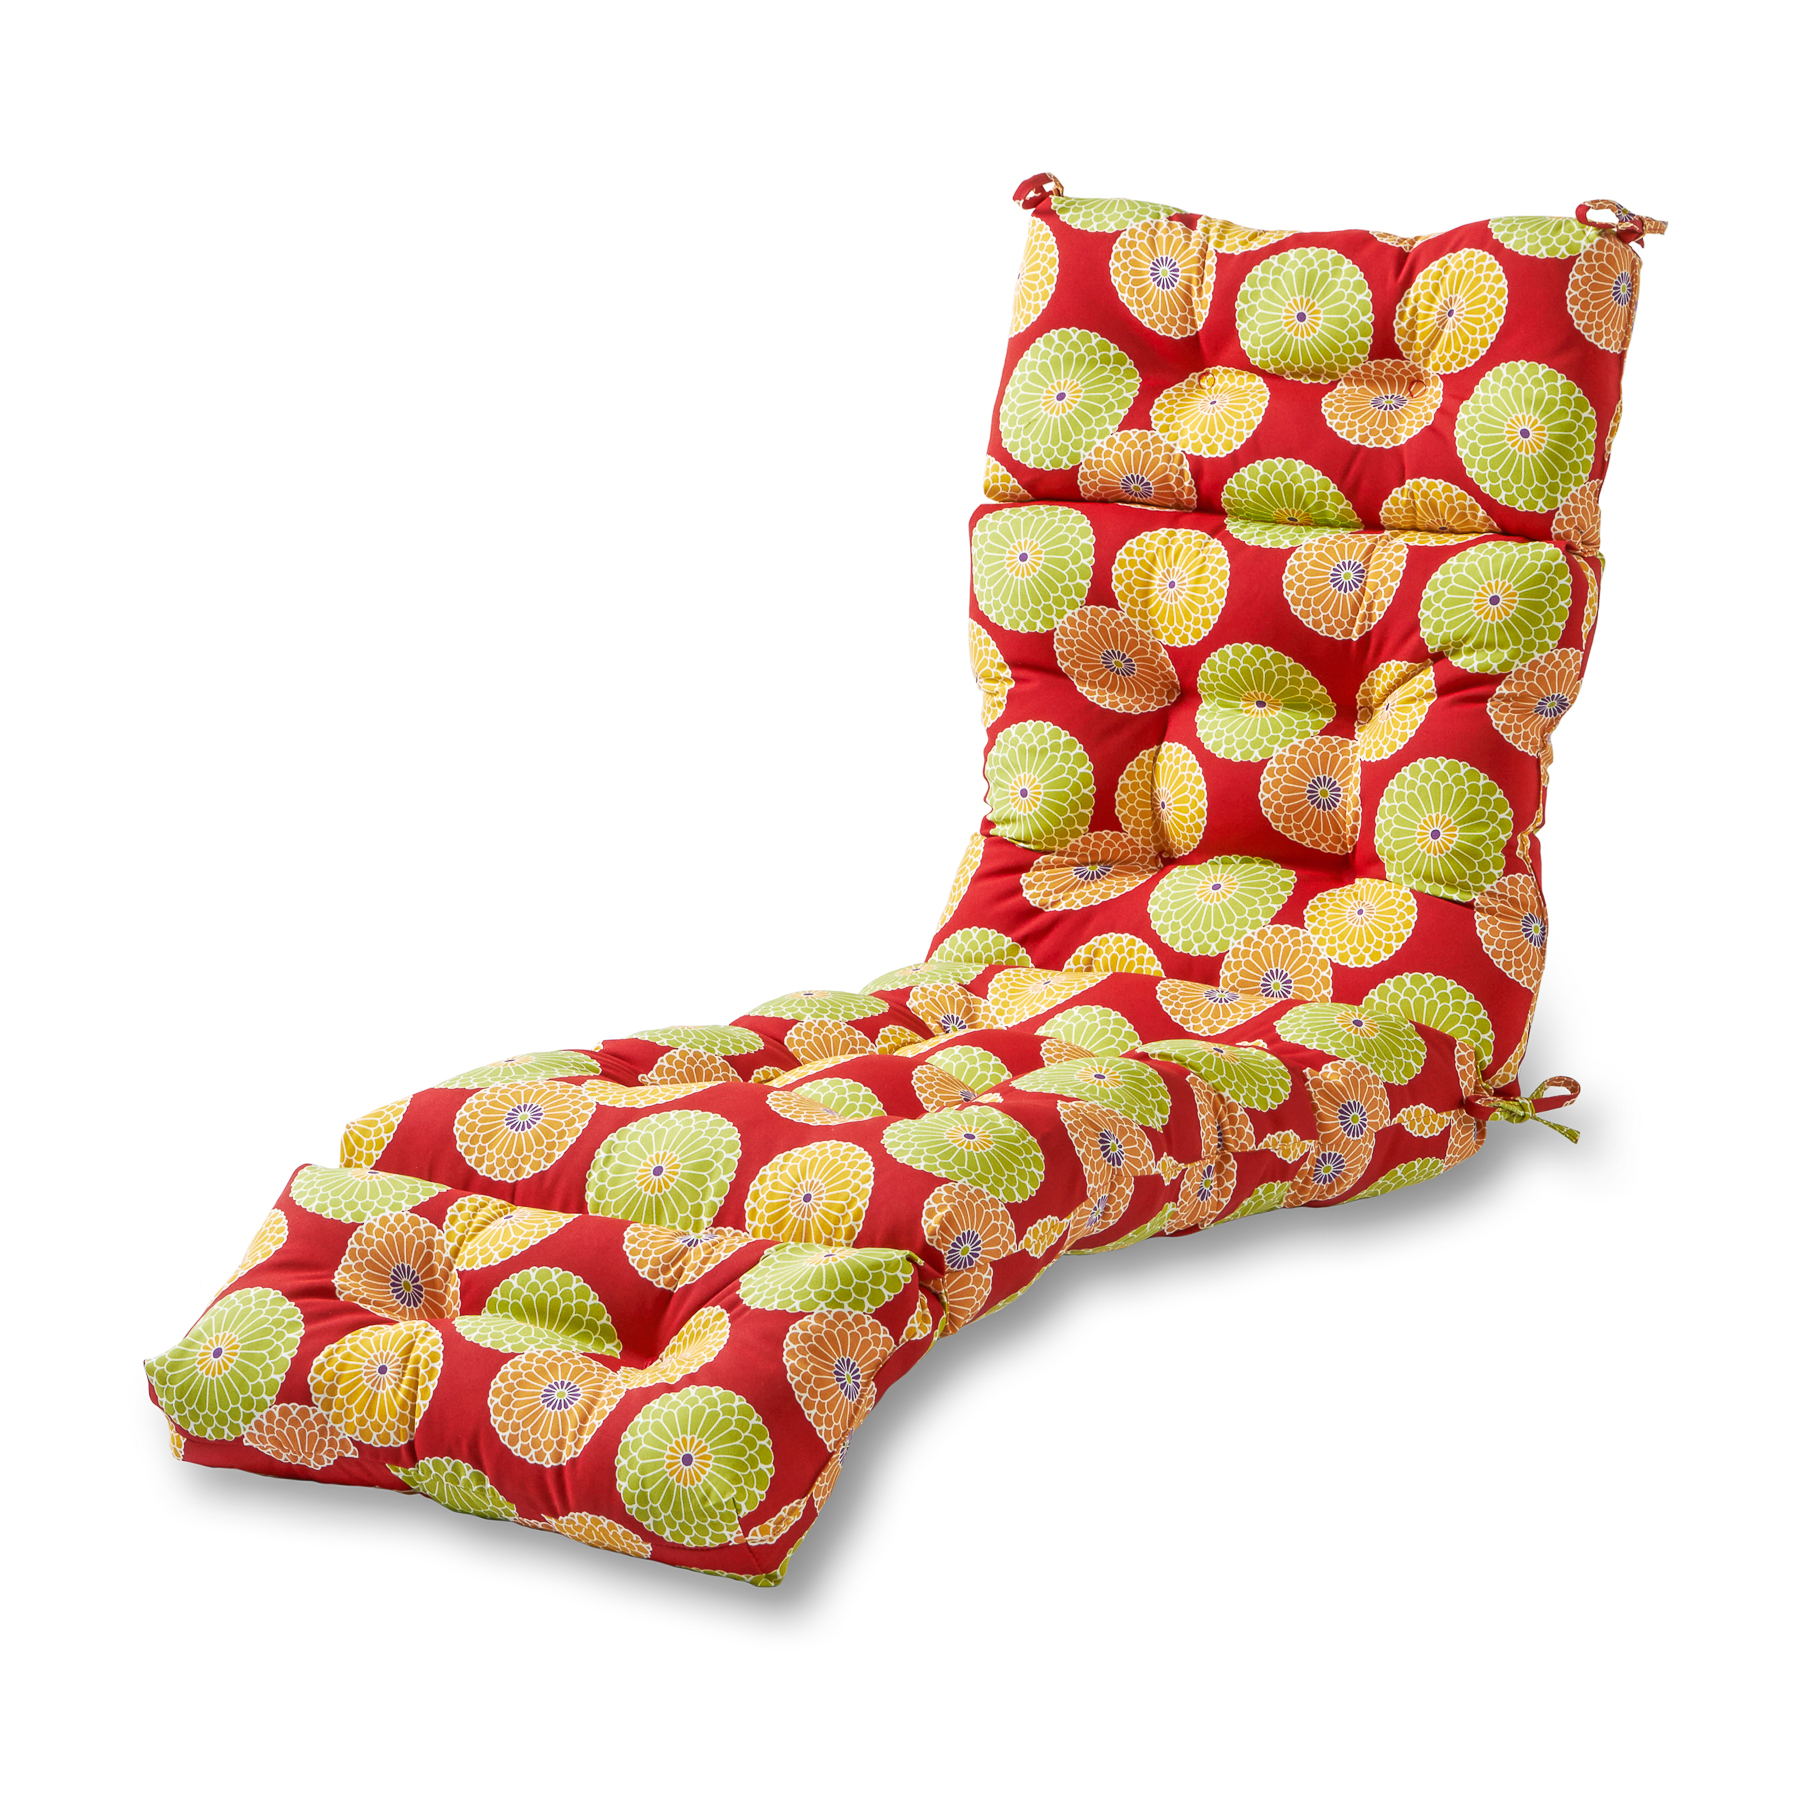 Greendale Home Fashions Floral Medallion Outdoor Chaise Lounge Cushion